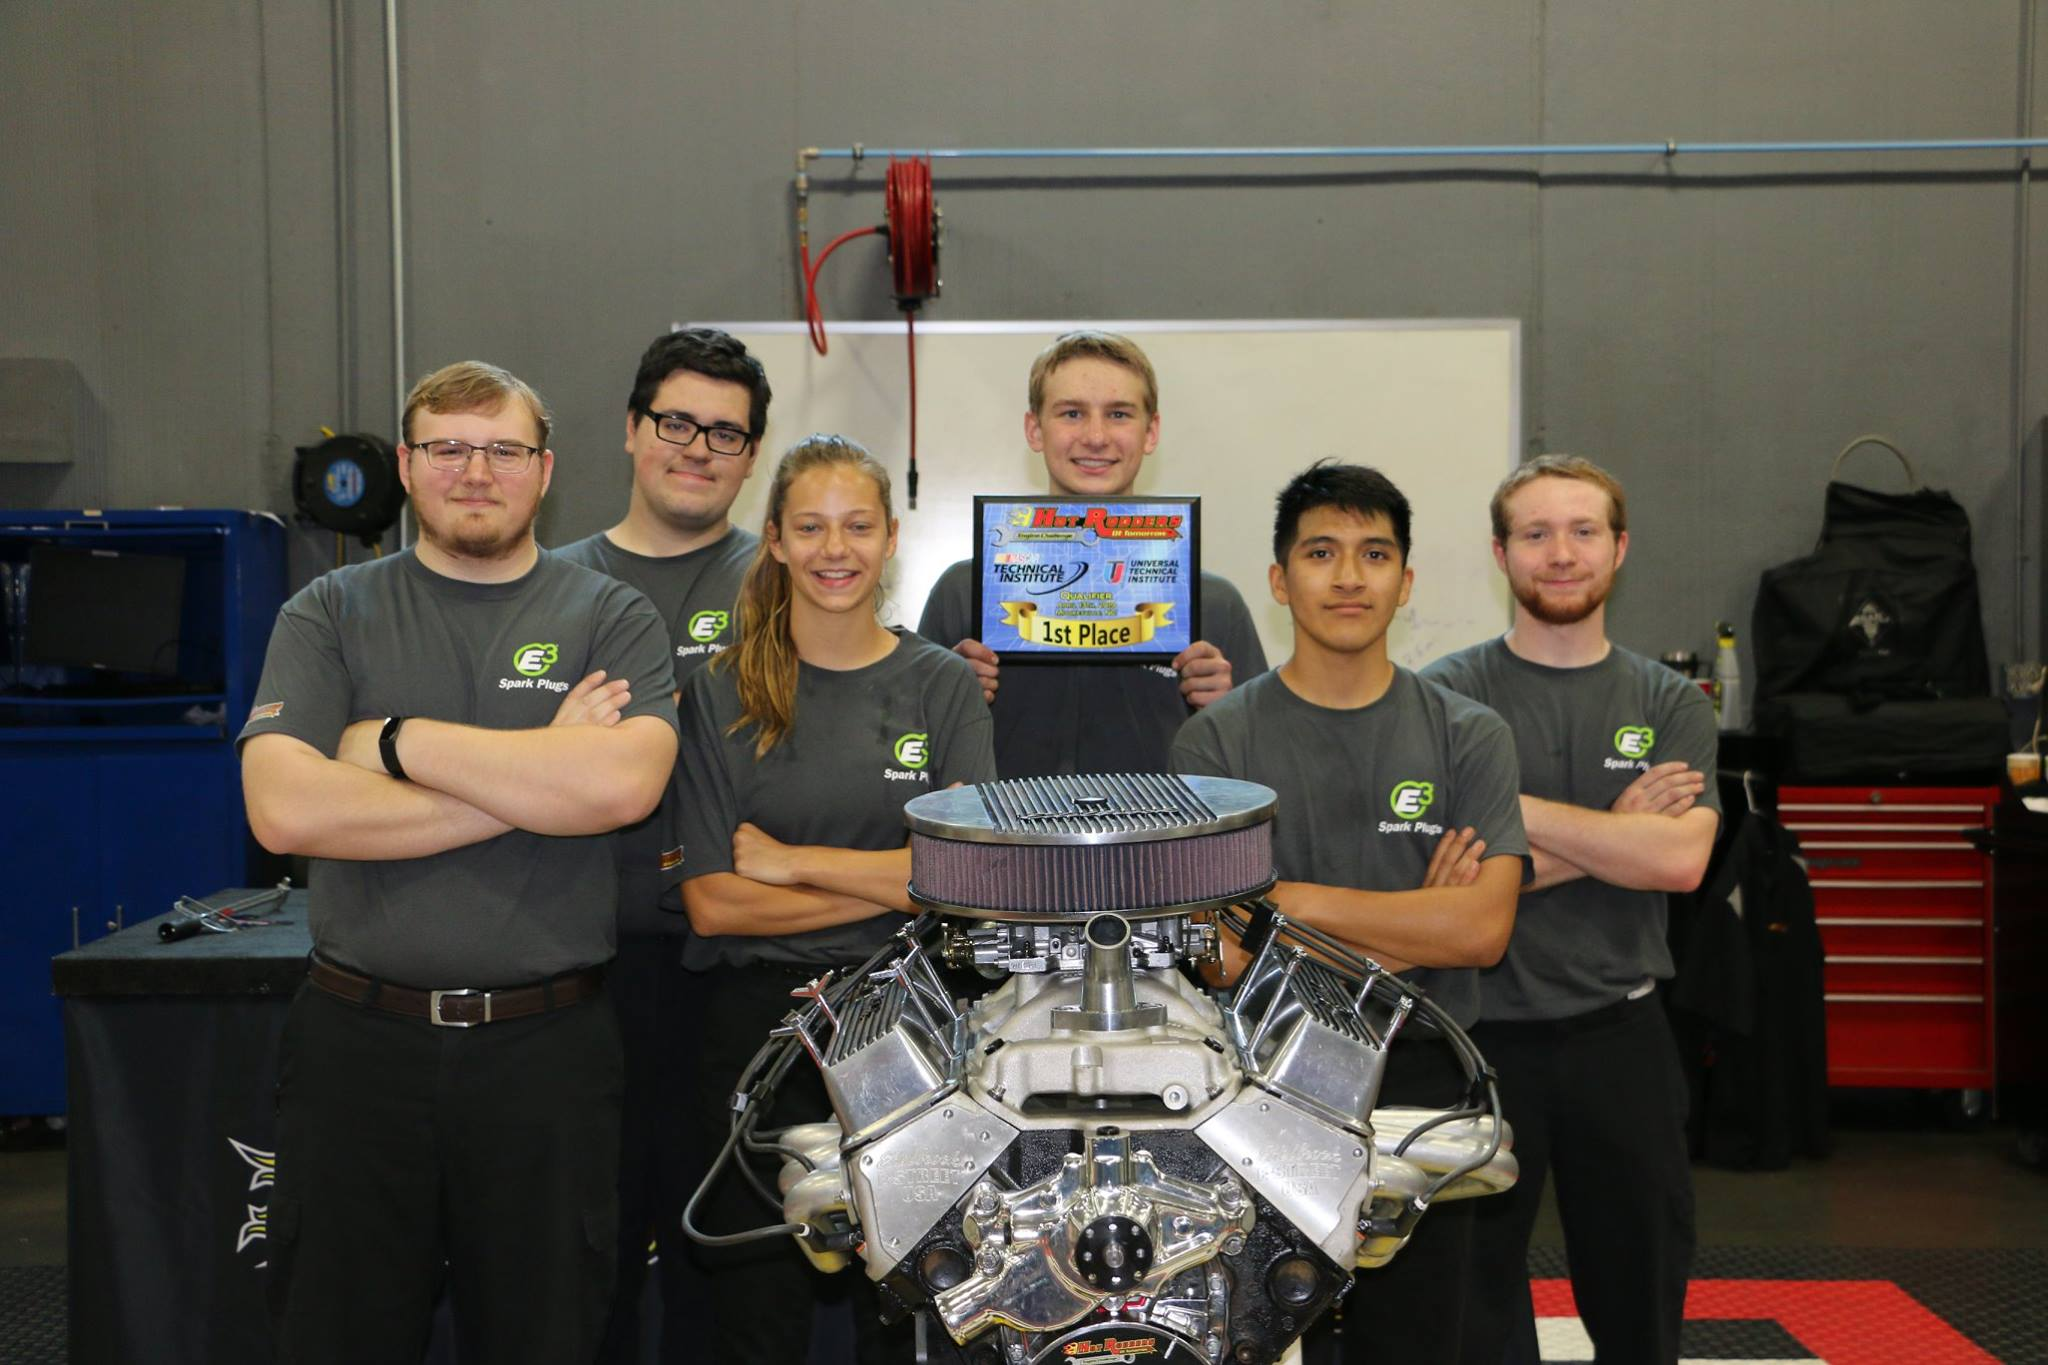 Team E3 from Forsyth Central High School in Cumming, Georgia won the Hot Rodders of Tomorrow qualfying round at Universal Techni